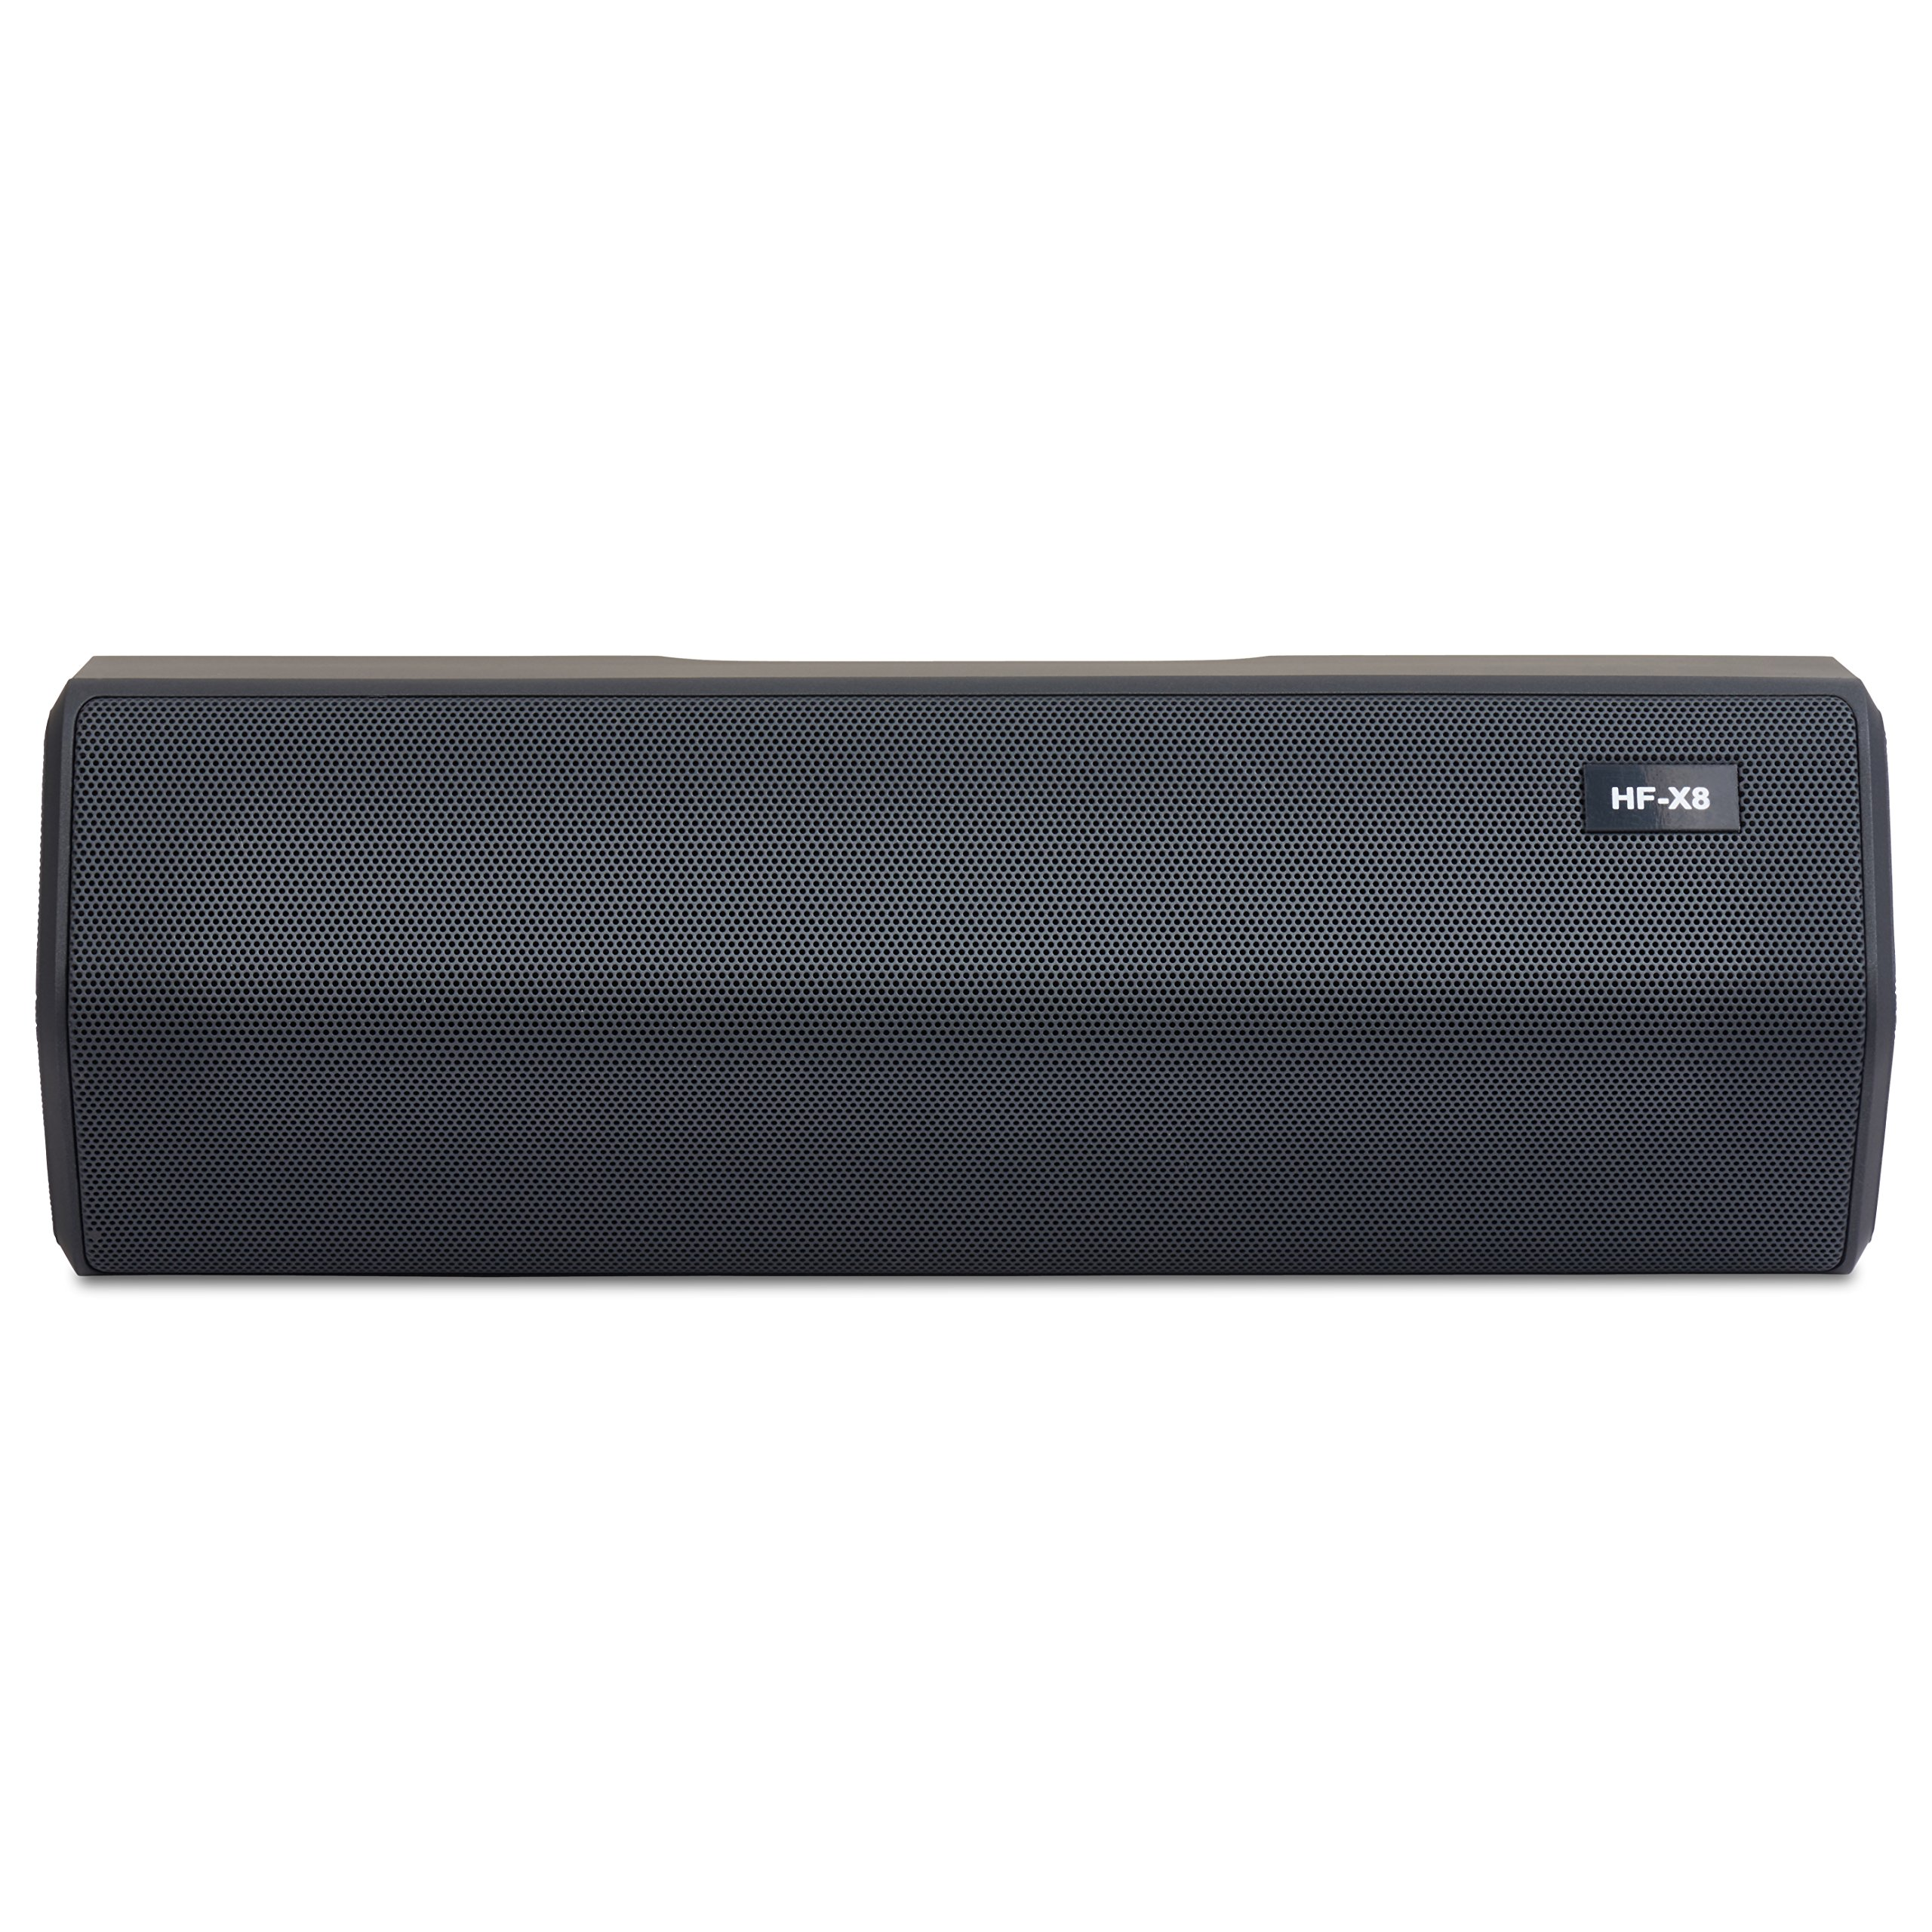 TSC Home Portable 32 Feet High Fidelity Transmission Wireless (Bluetooth) Sound Bar With Bass, Built in Mic, For Smart Phones, Tablets, Computers, USB, Supporting MP3 Format Music